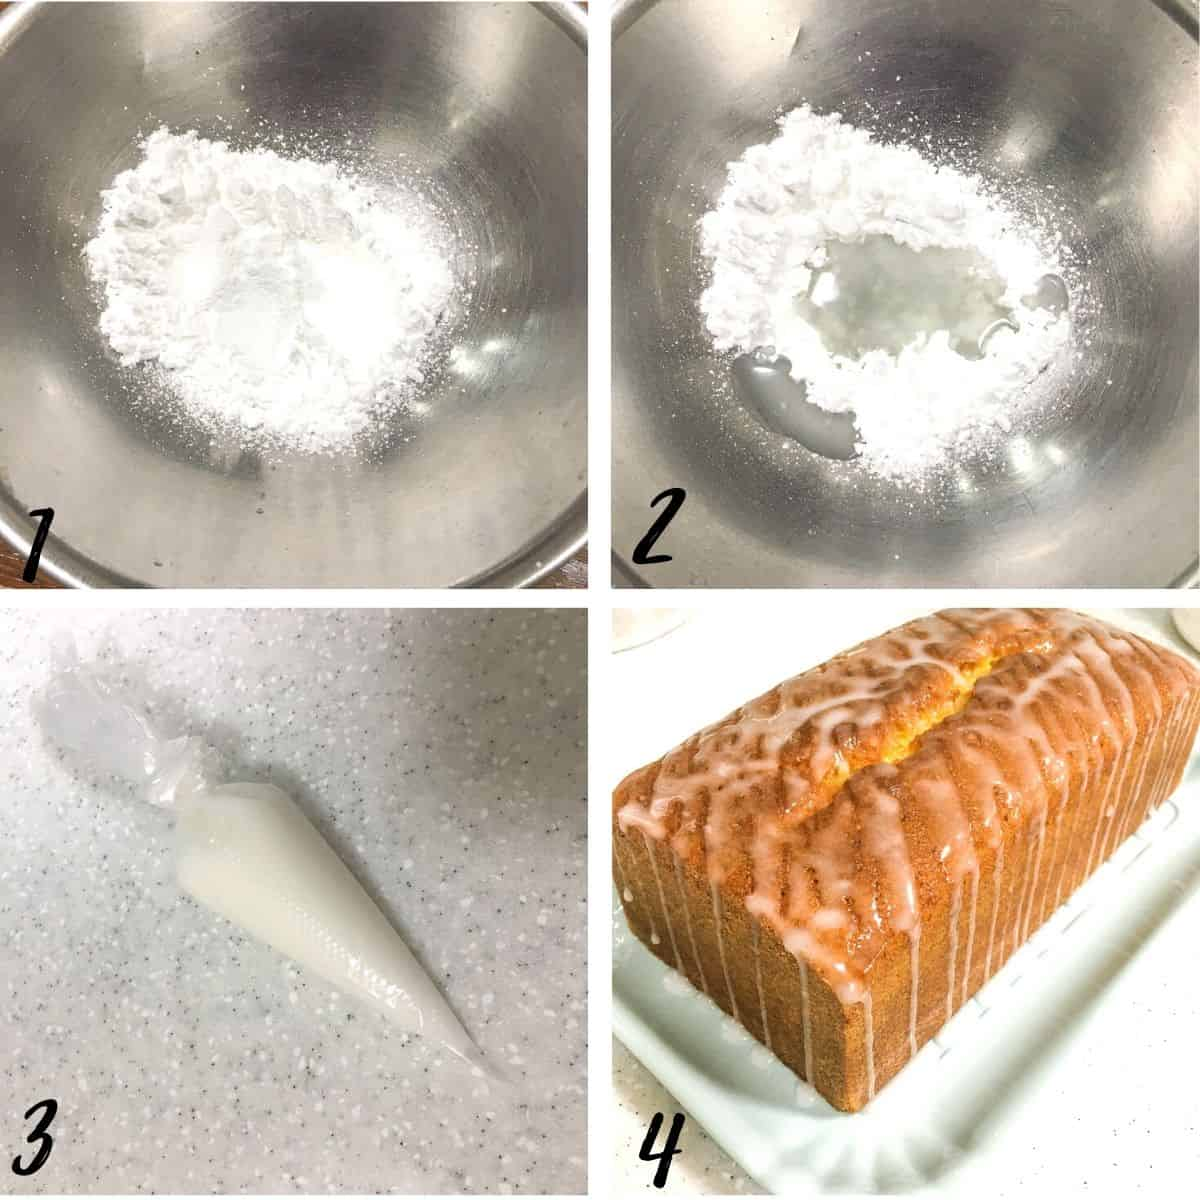 A poster of 4 images showing how to mix lime sugar glaze icing